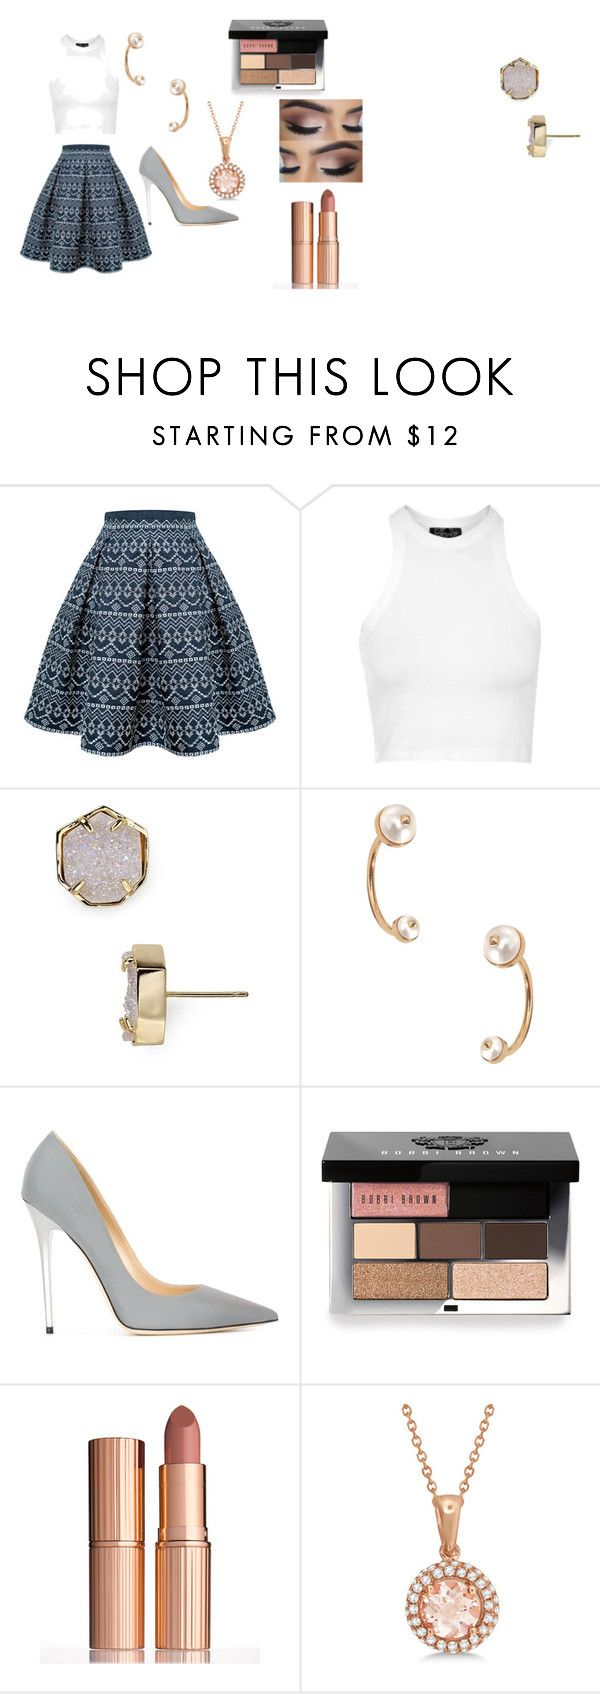 """prom"" by keeshac on Polyvore featuring Rumour London, Topshop, Kendra Scott, Valentino, Jimmy Choo, Bobbi Brown Cosmetics, Charlotte Tilbury, Allurez, women's clothing and women"